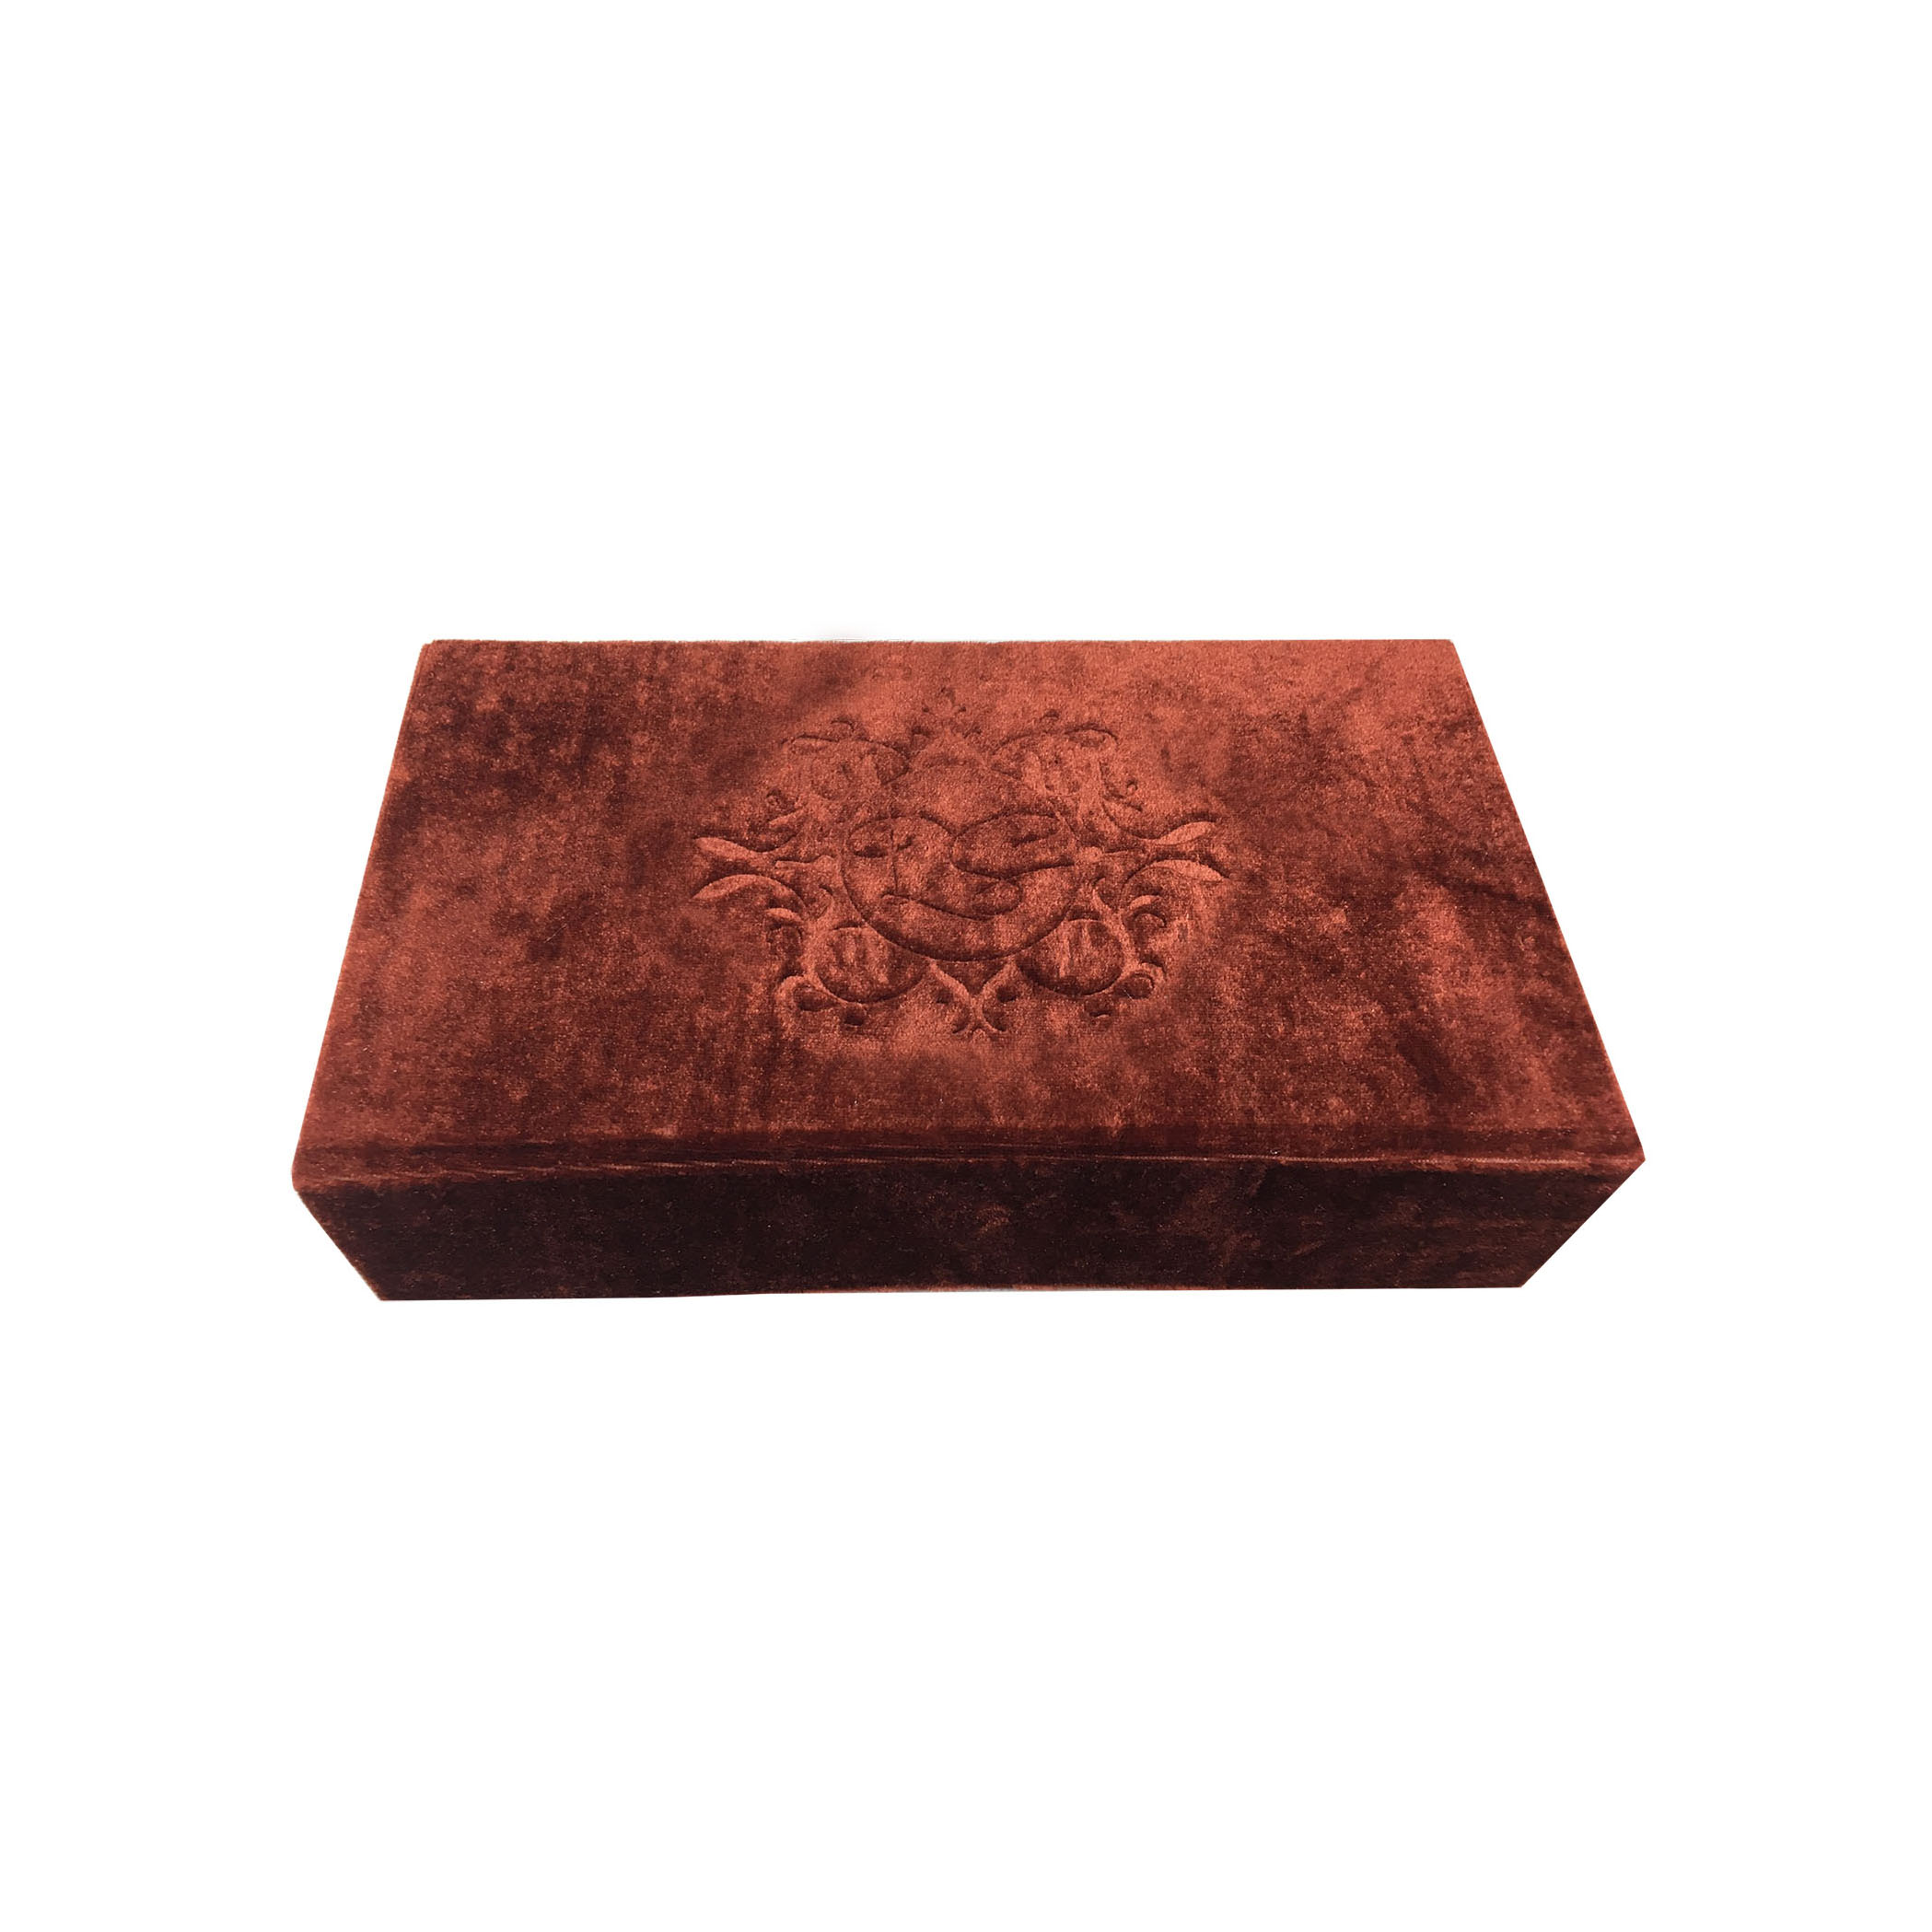 Vintage Monogram Embossed Velvet Box For Wedding Cards & Stationary